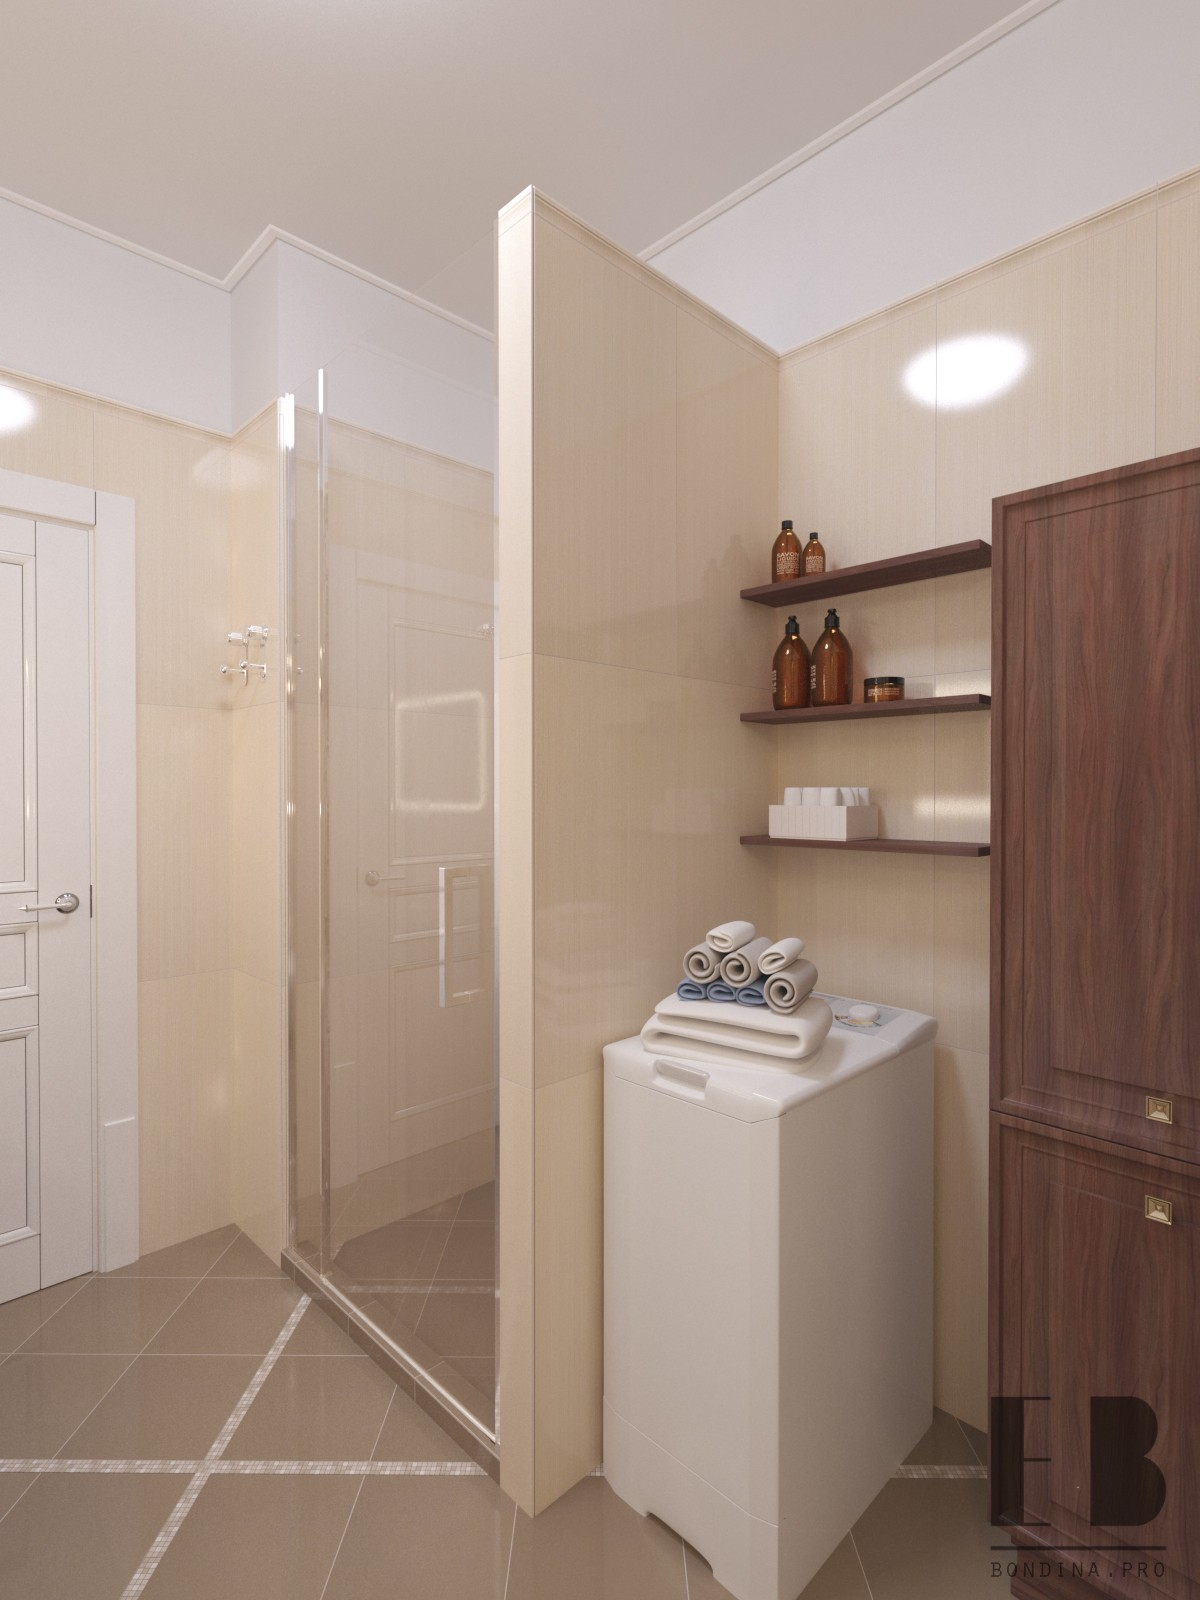 Design project of the bathroom in a classic style